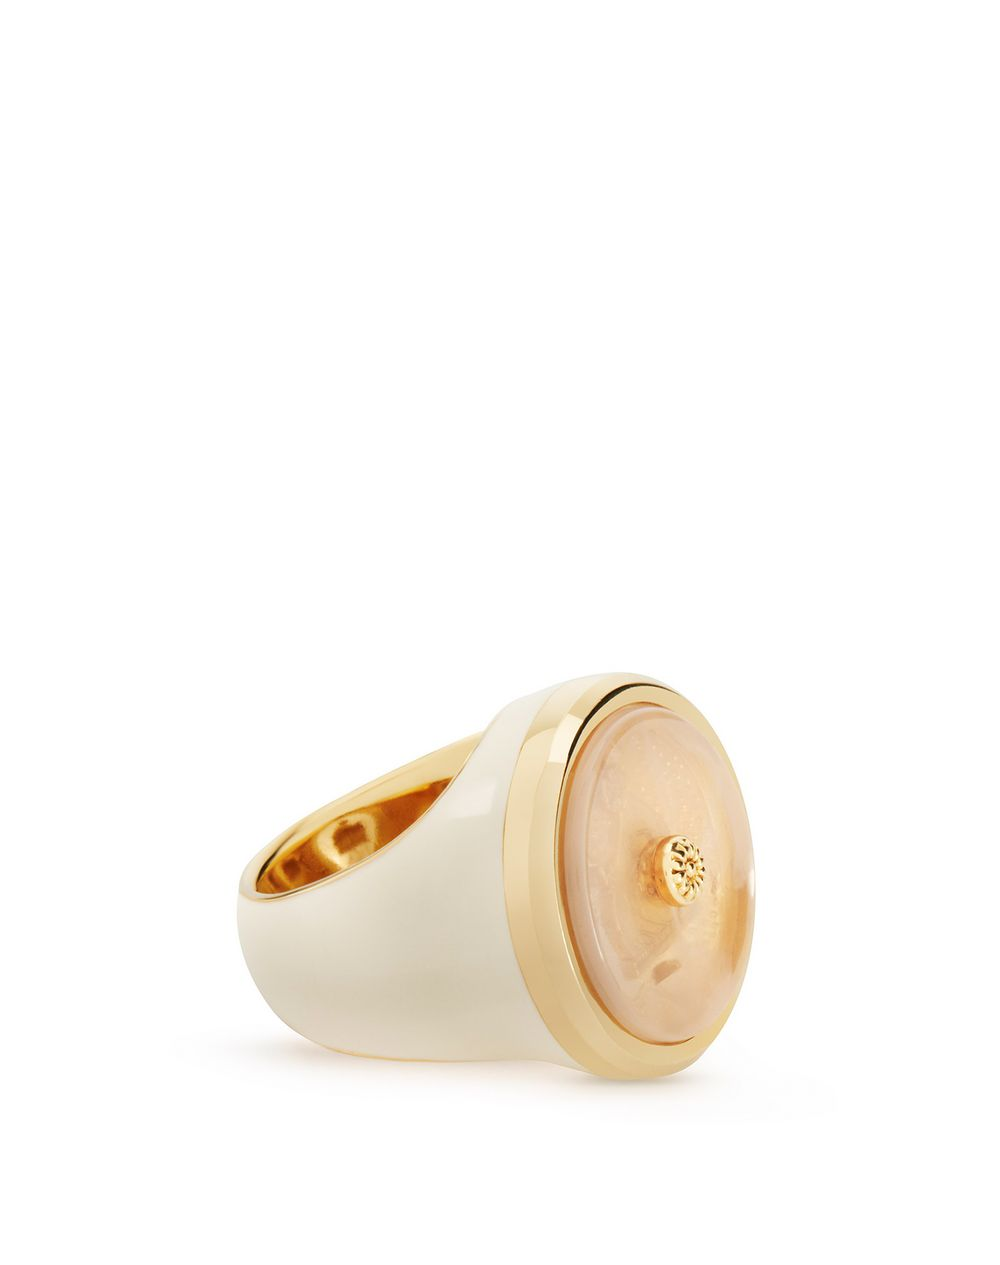 MOTHER AND CHILD RING  - Lanvin